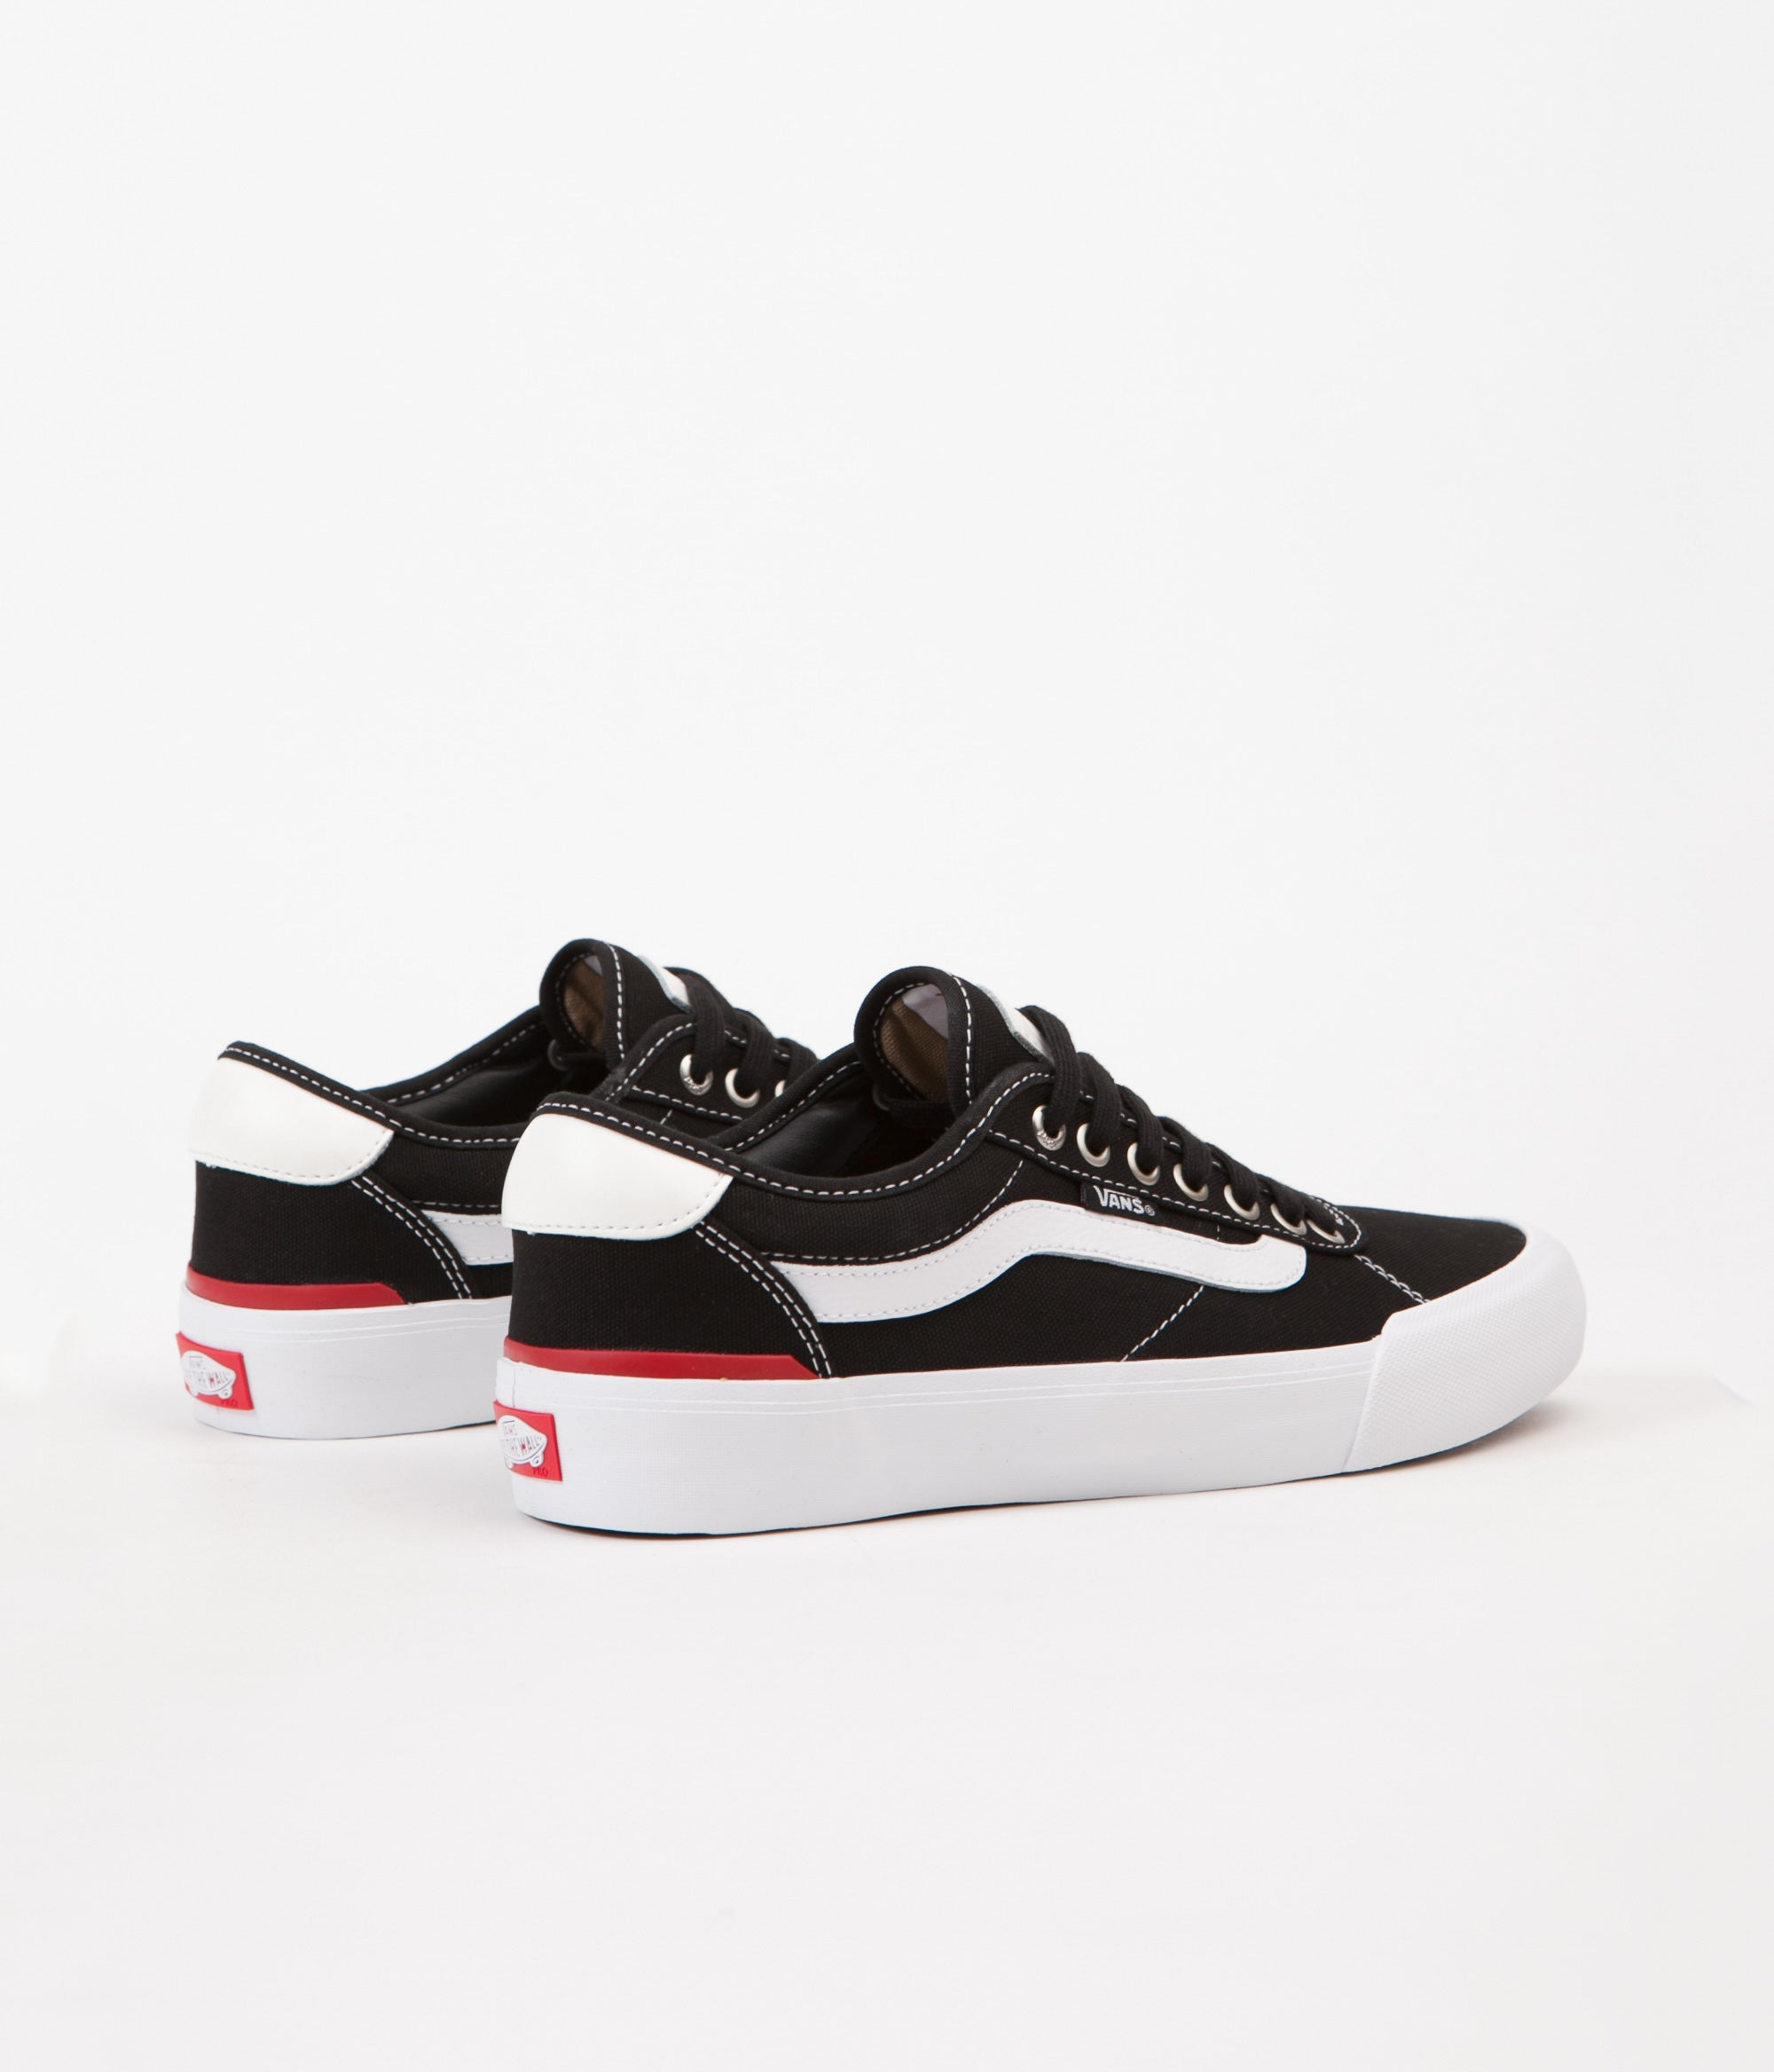 9aad6cd7731 Vans Chima Pro 2 Shoes - (Canvas) Black   White